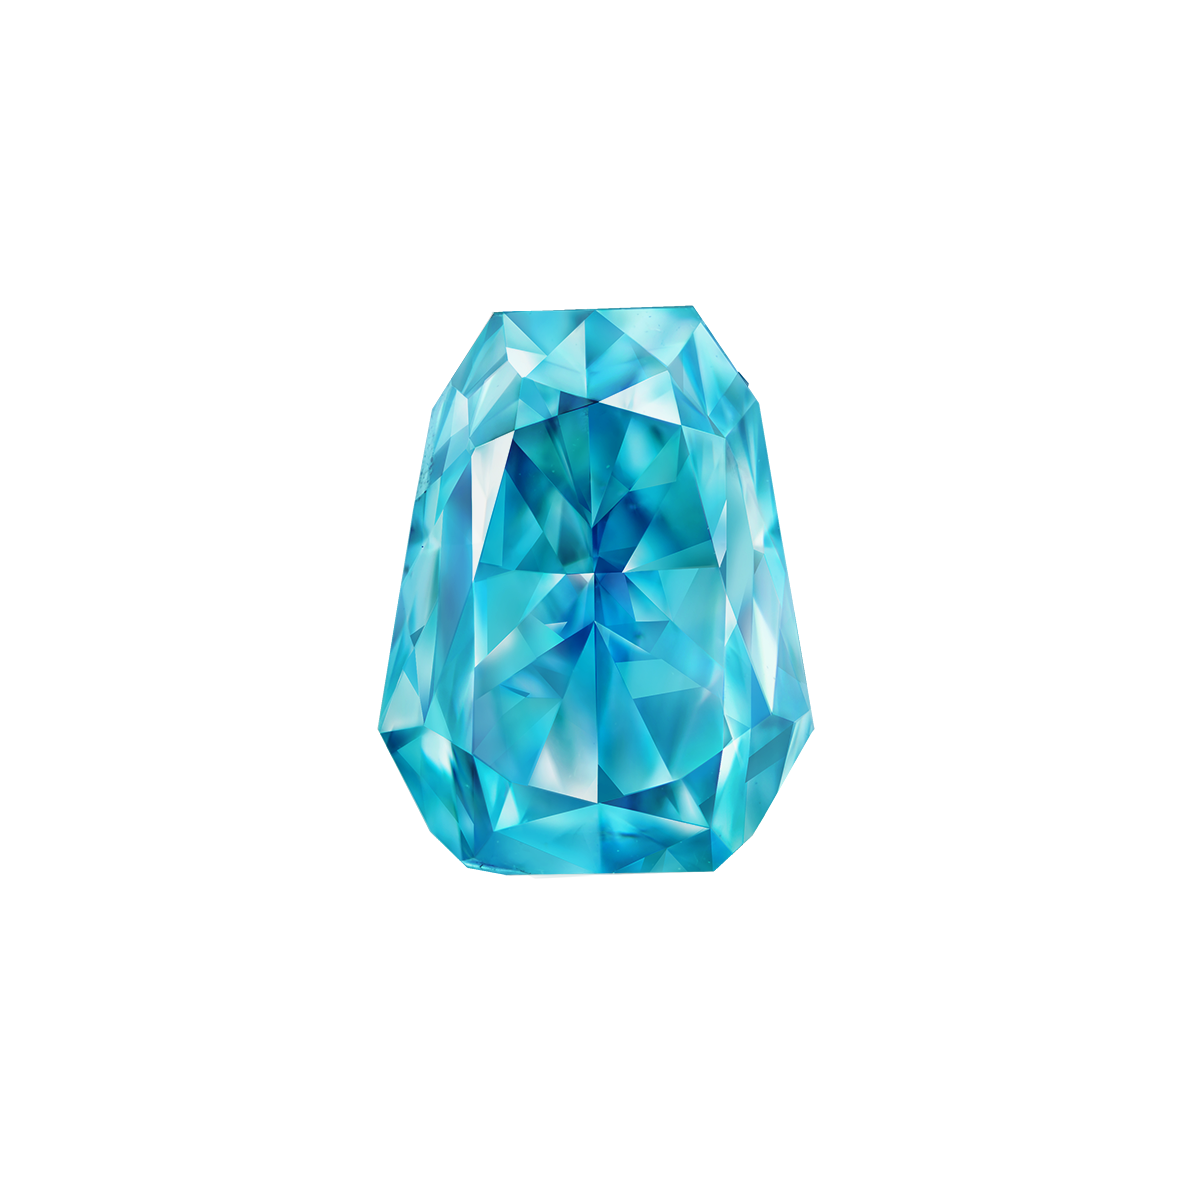 GIA 1.56克拉 艷彩綠藍彩鑽裸石 